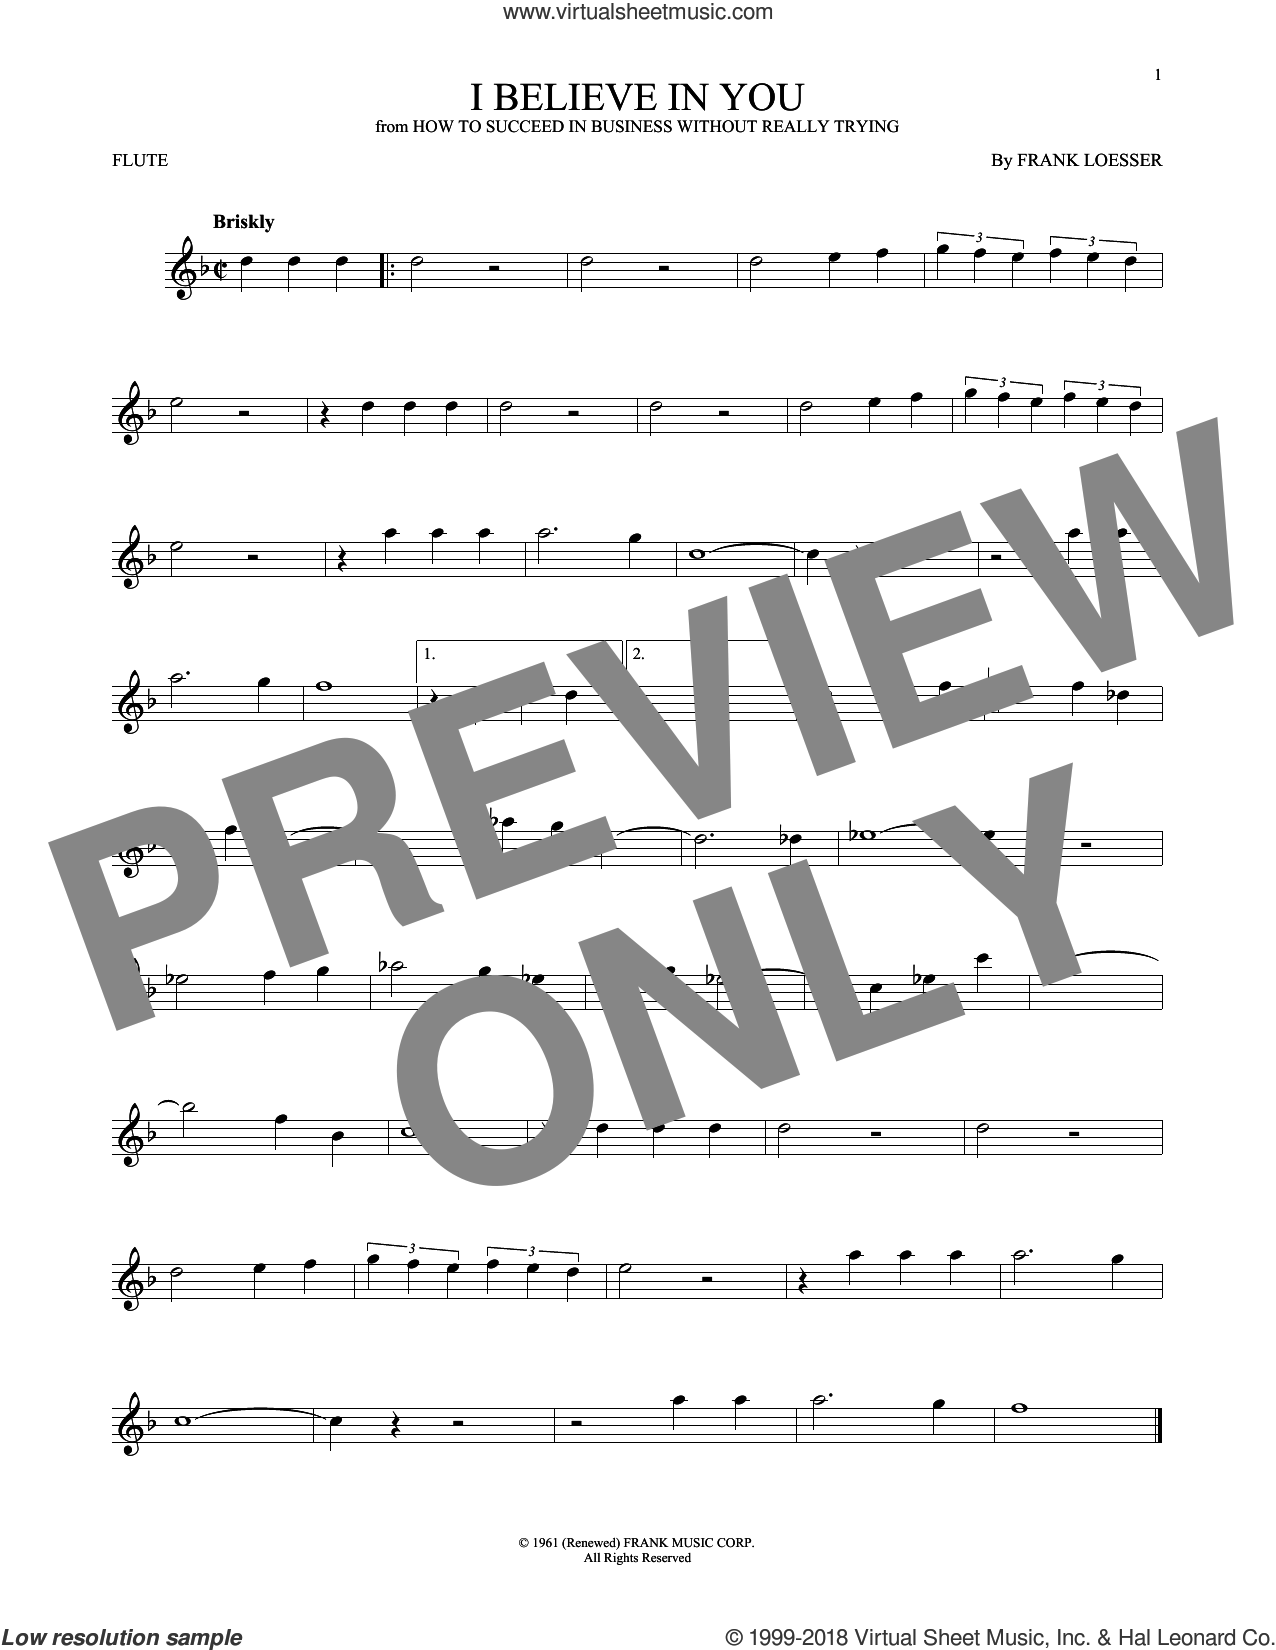 I Believe In You sheet music for flute solo by Frank Loesser, intermediate skill level